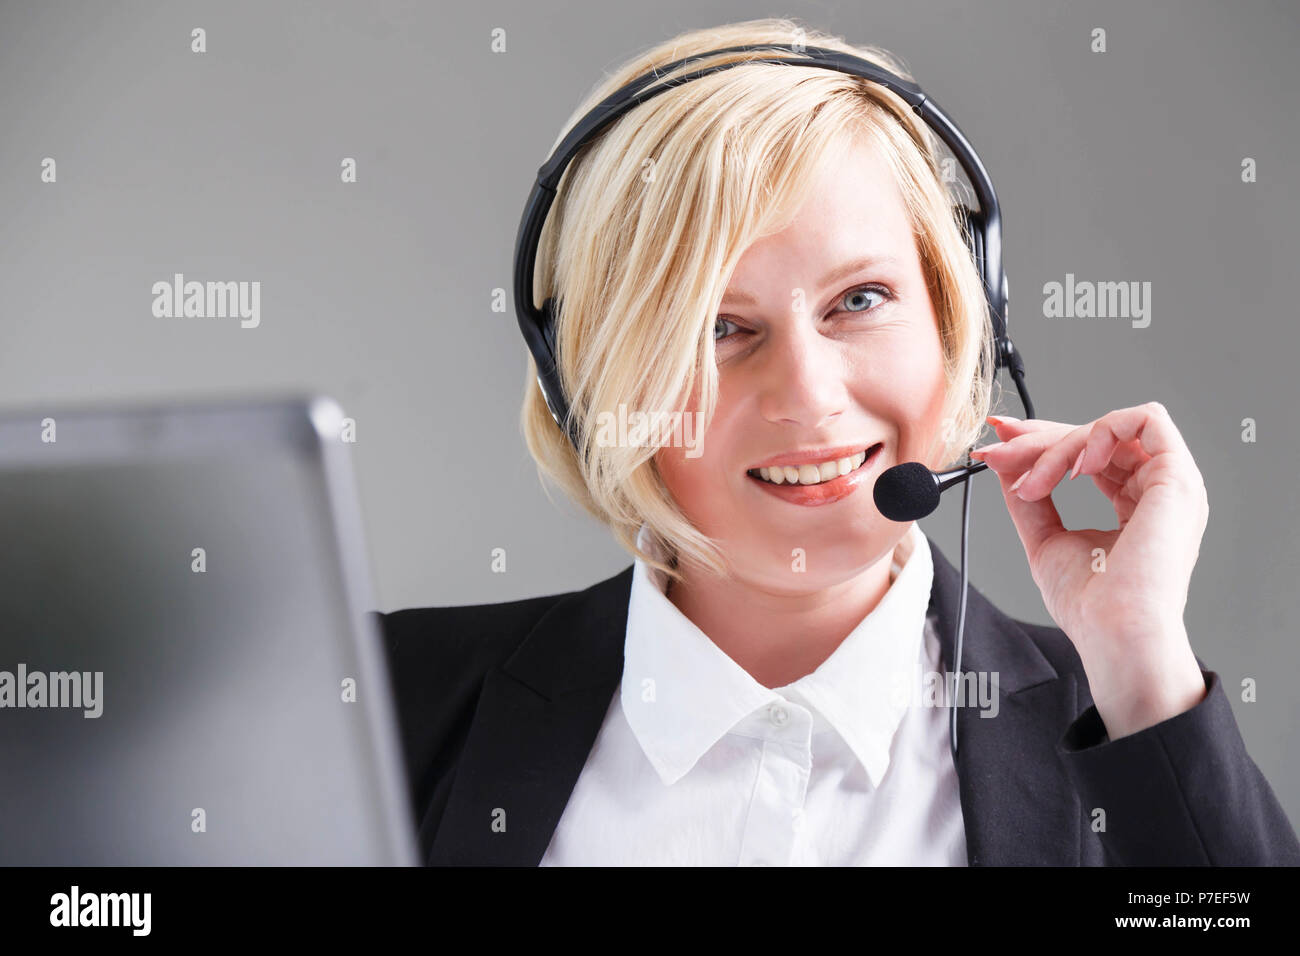 Smiling woman, call center operator dressed in black stylish suit with headset earphones - Stock Image